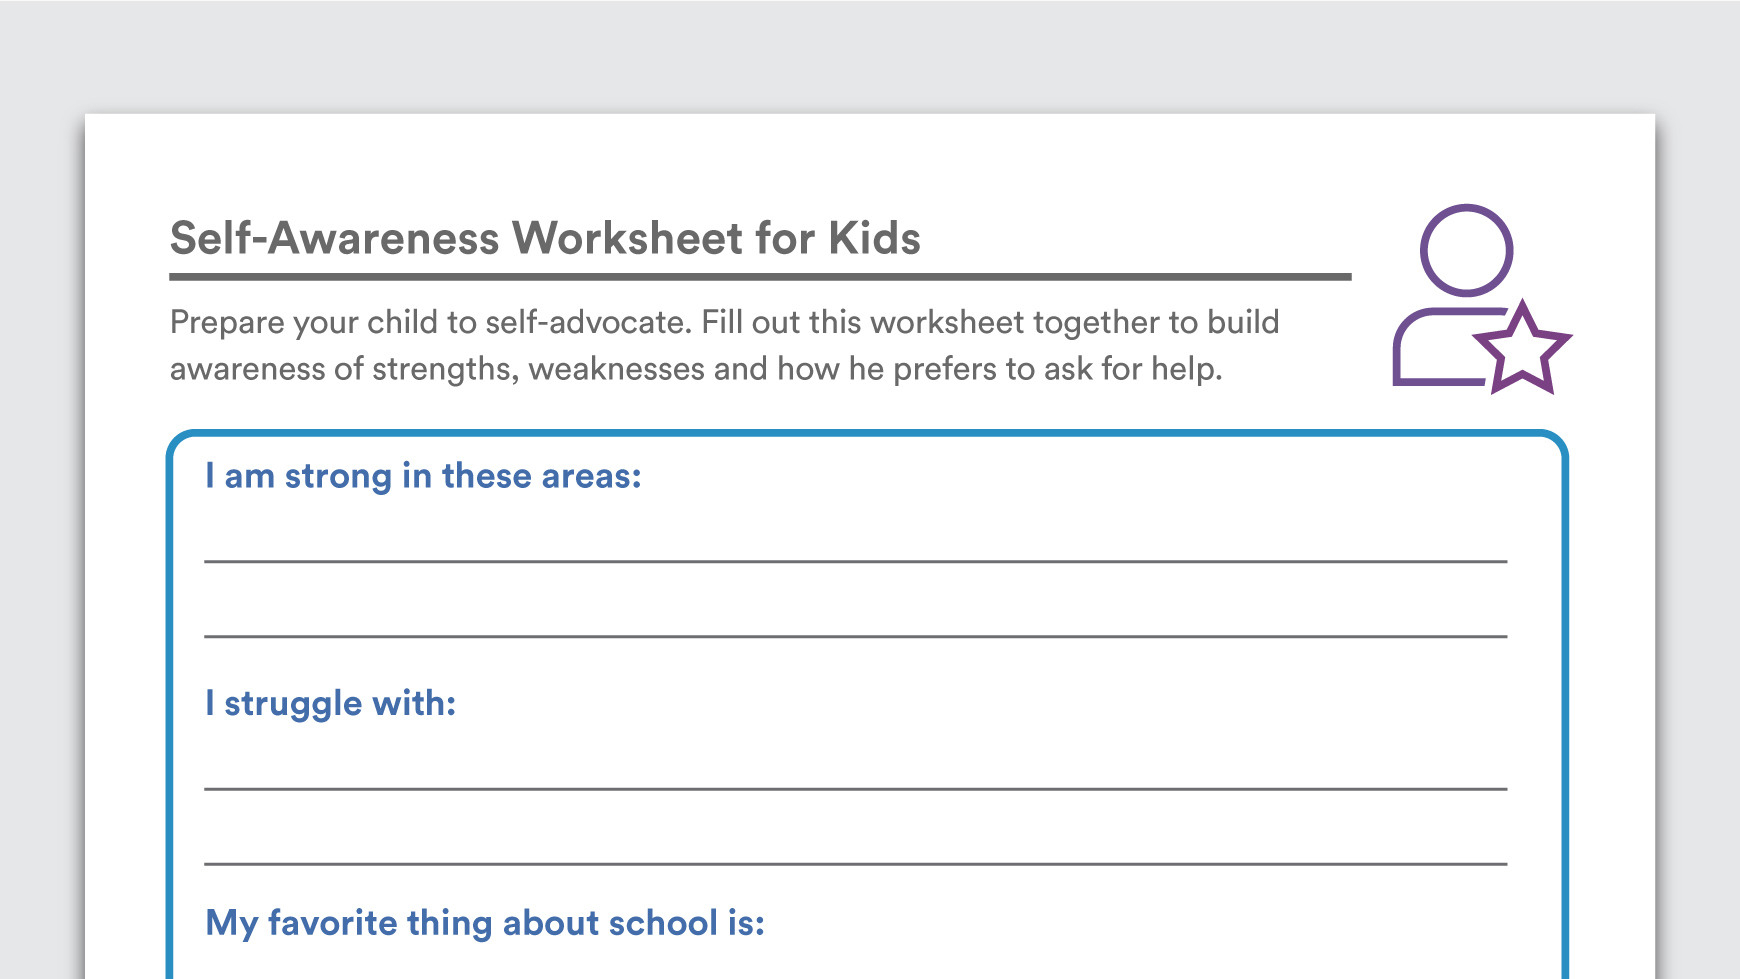 Self Areness Worksheets For Kids